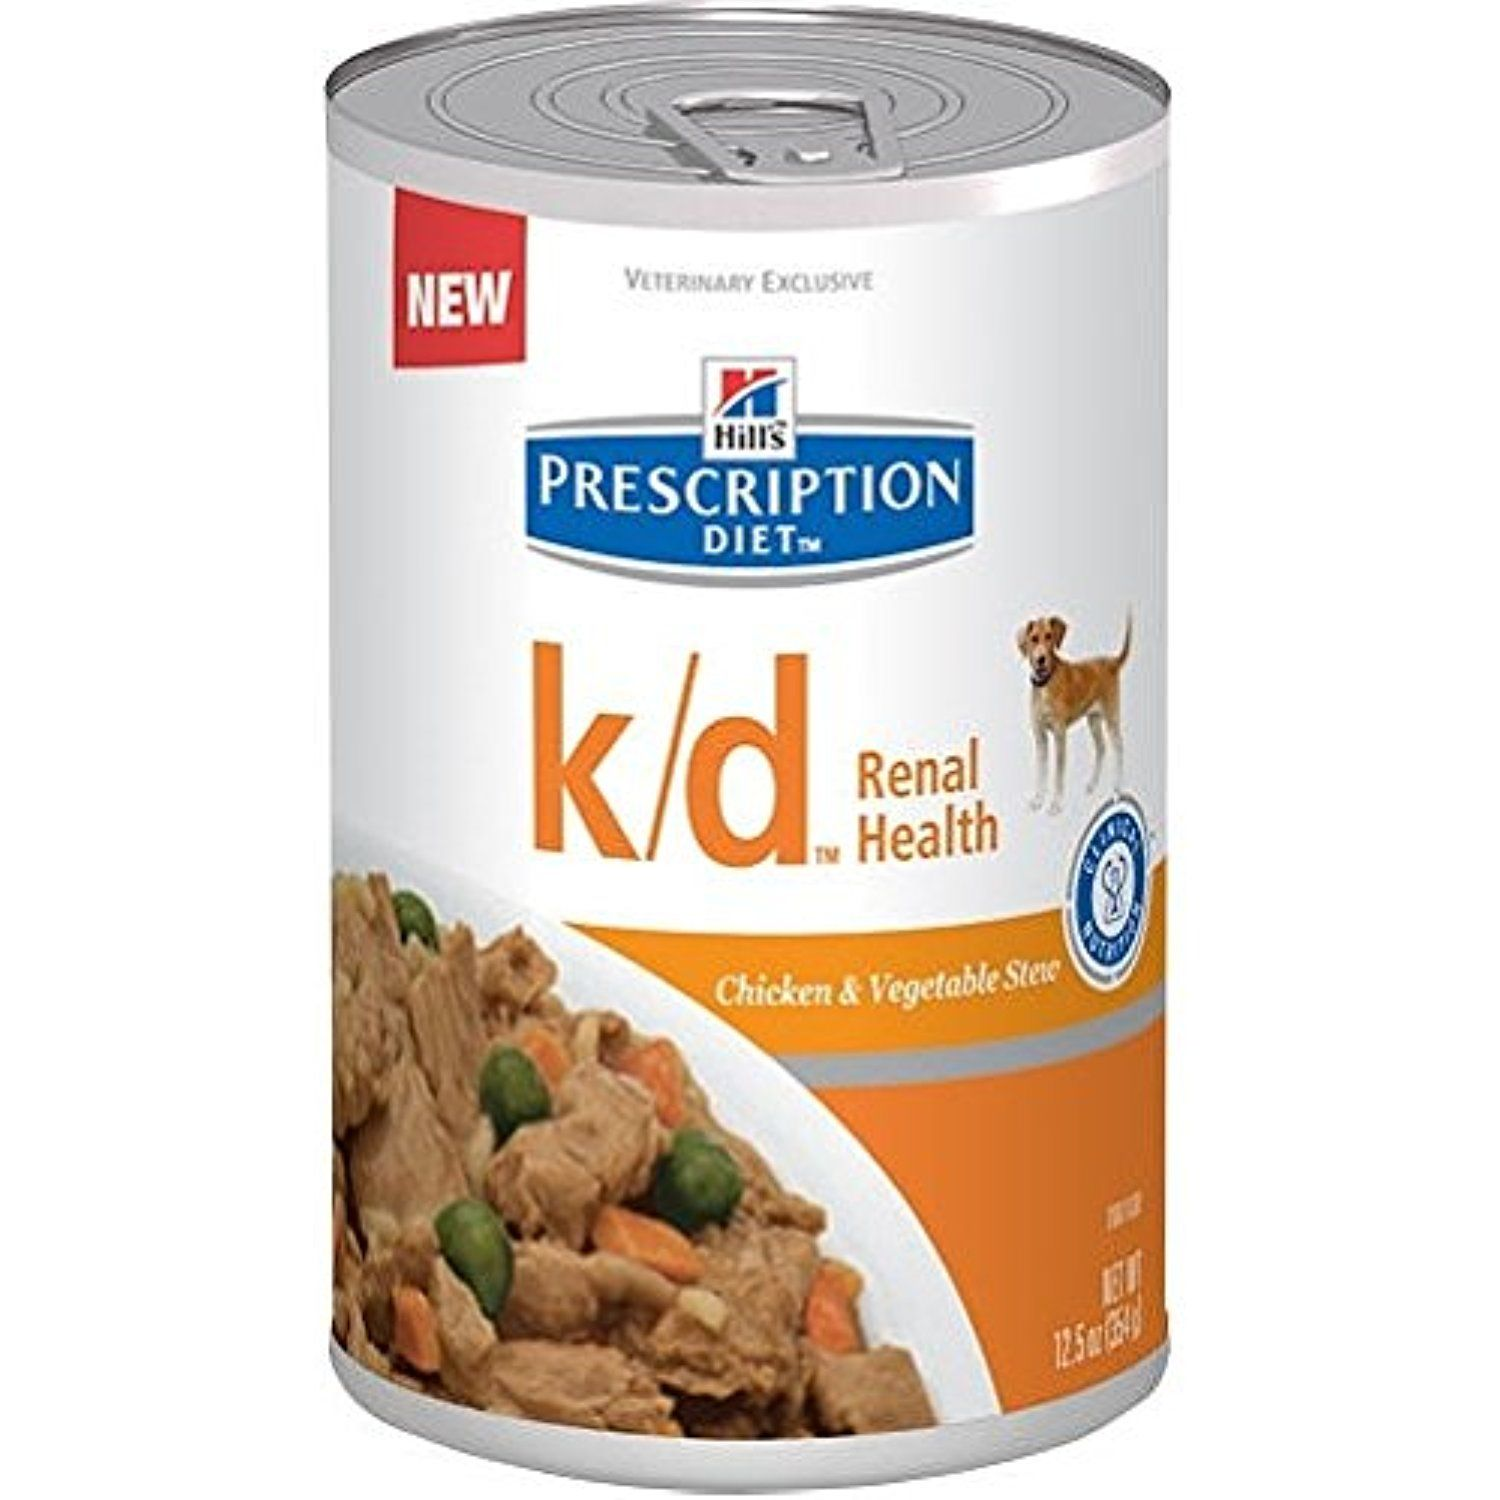 Hills prescription diet kd canine renal health with